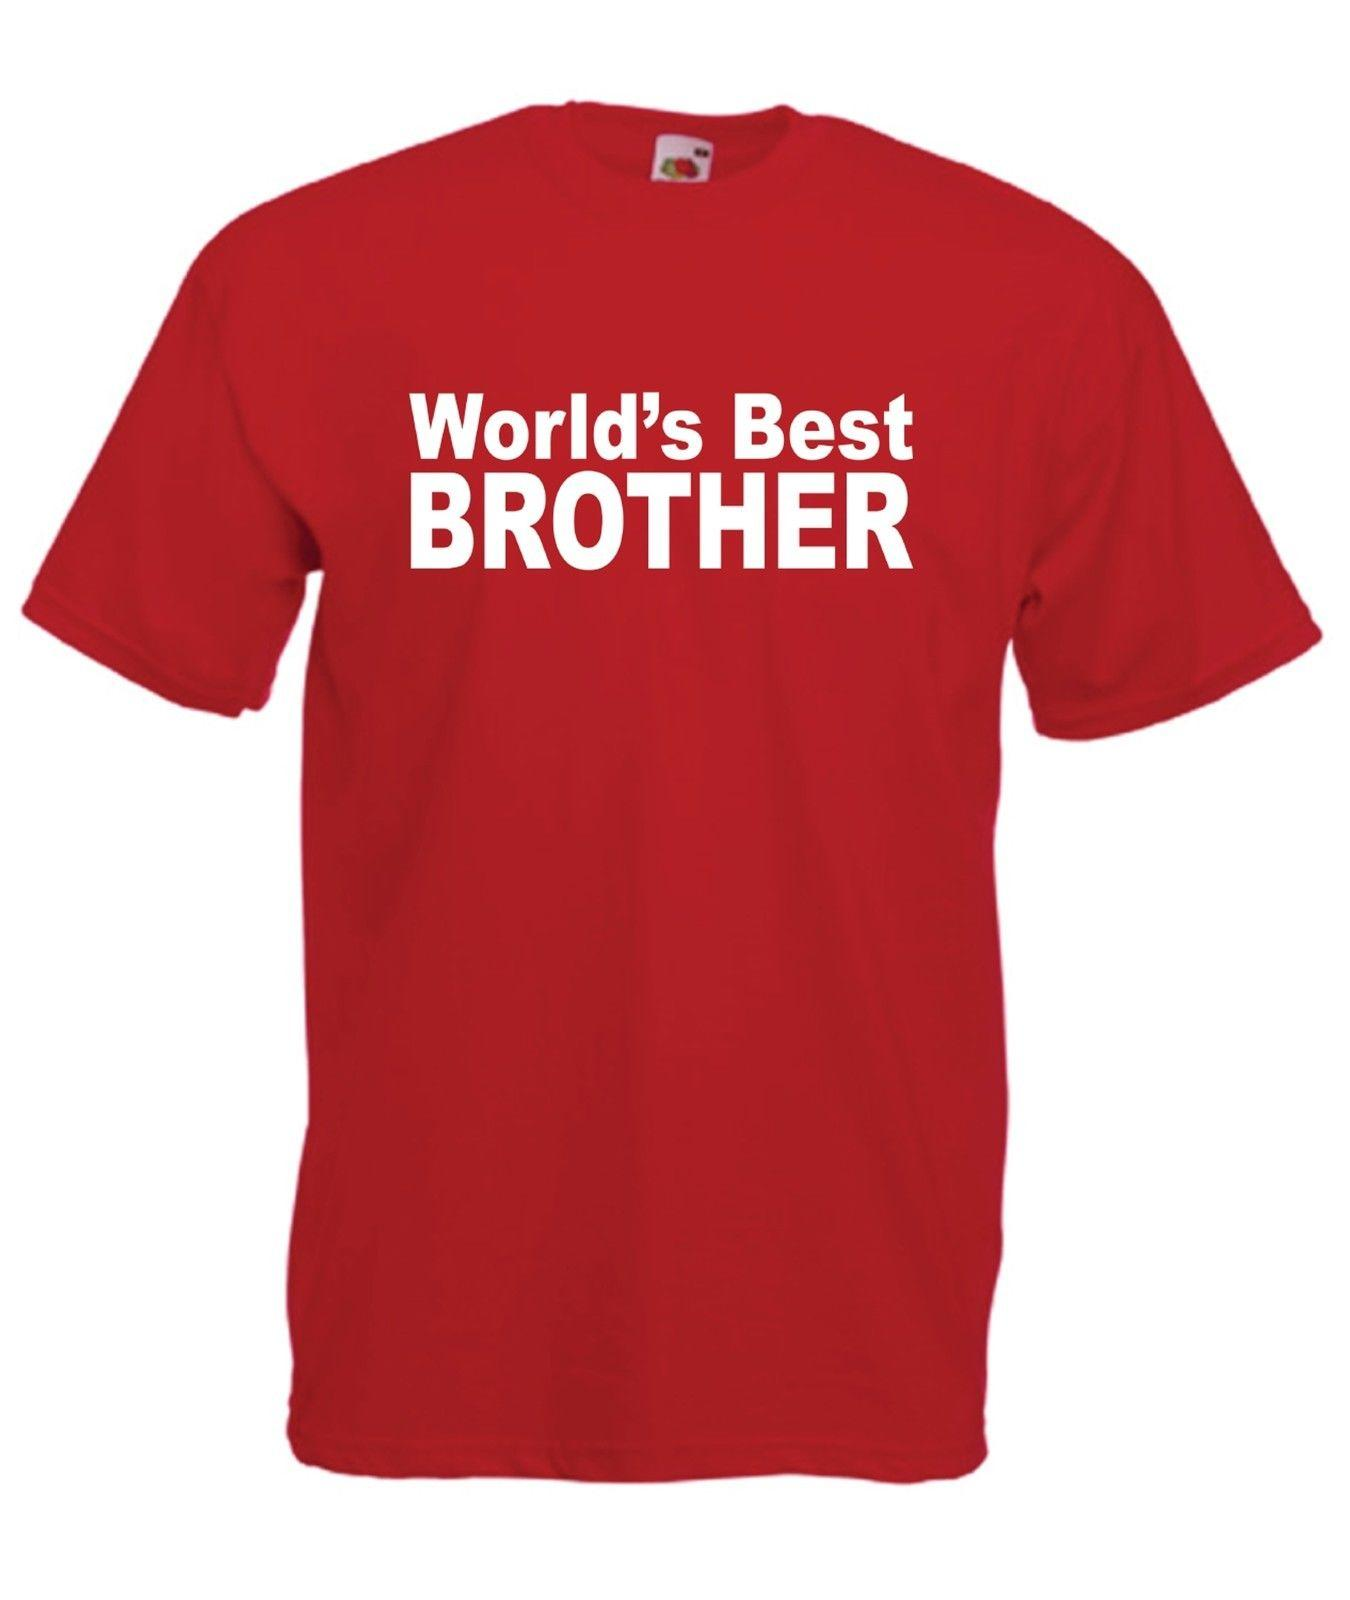 fc0a4d6768 WORLDS BEST BROTHER Christmas Birthday Present Gift Top Ideas Mens Womens TSHIRT  Best Tshirts Cool T Shirts Online From Mycarperformance, $11.01| DHgate.Com